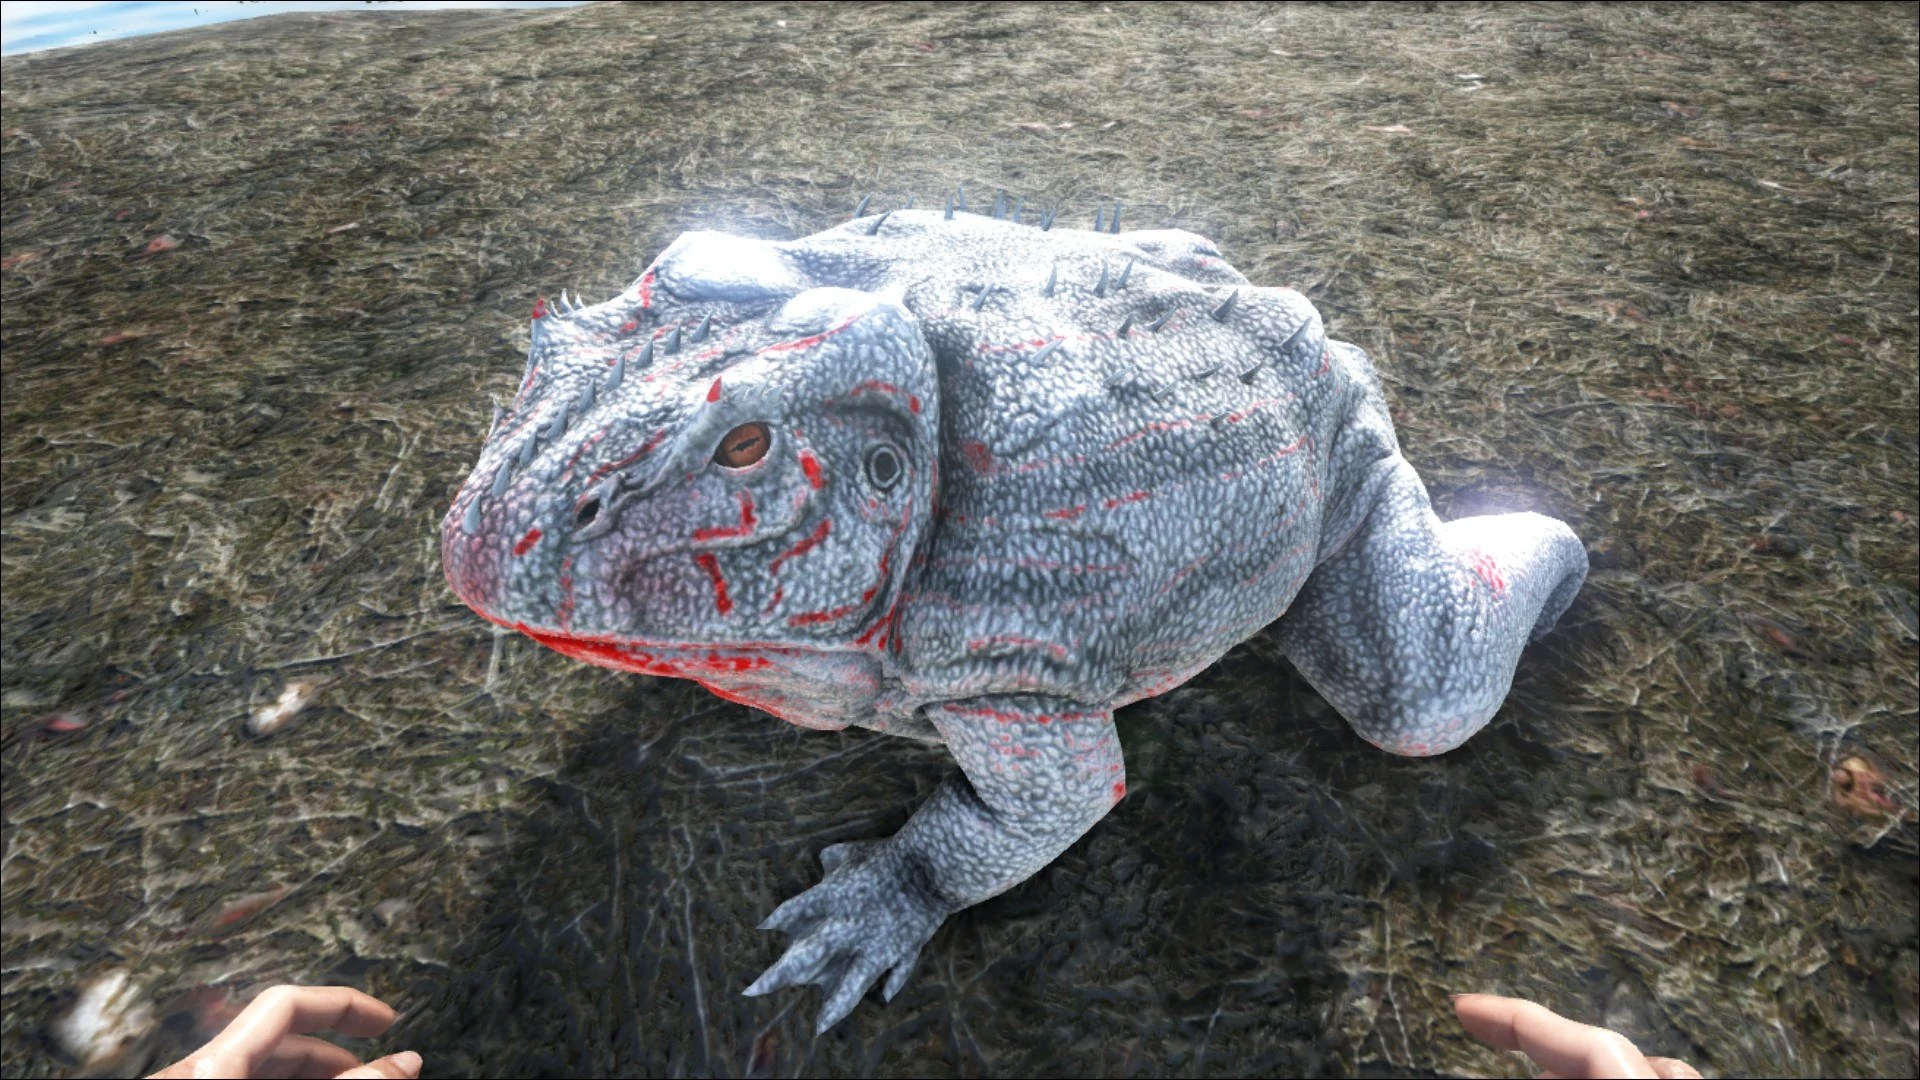 Beelzebufo Official ARK Survival Evolved Wiki